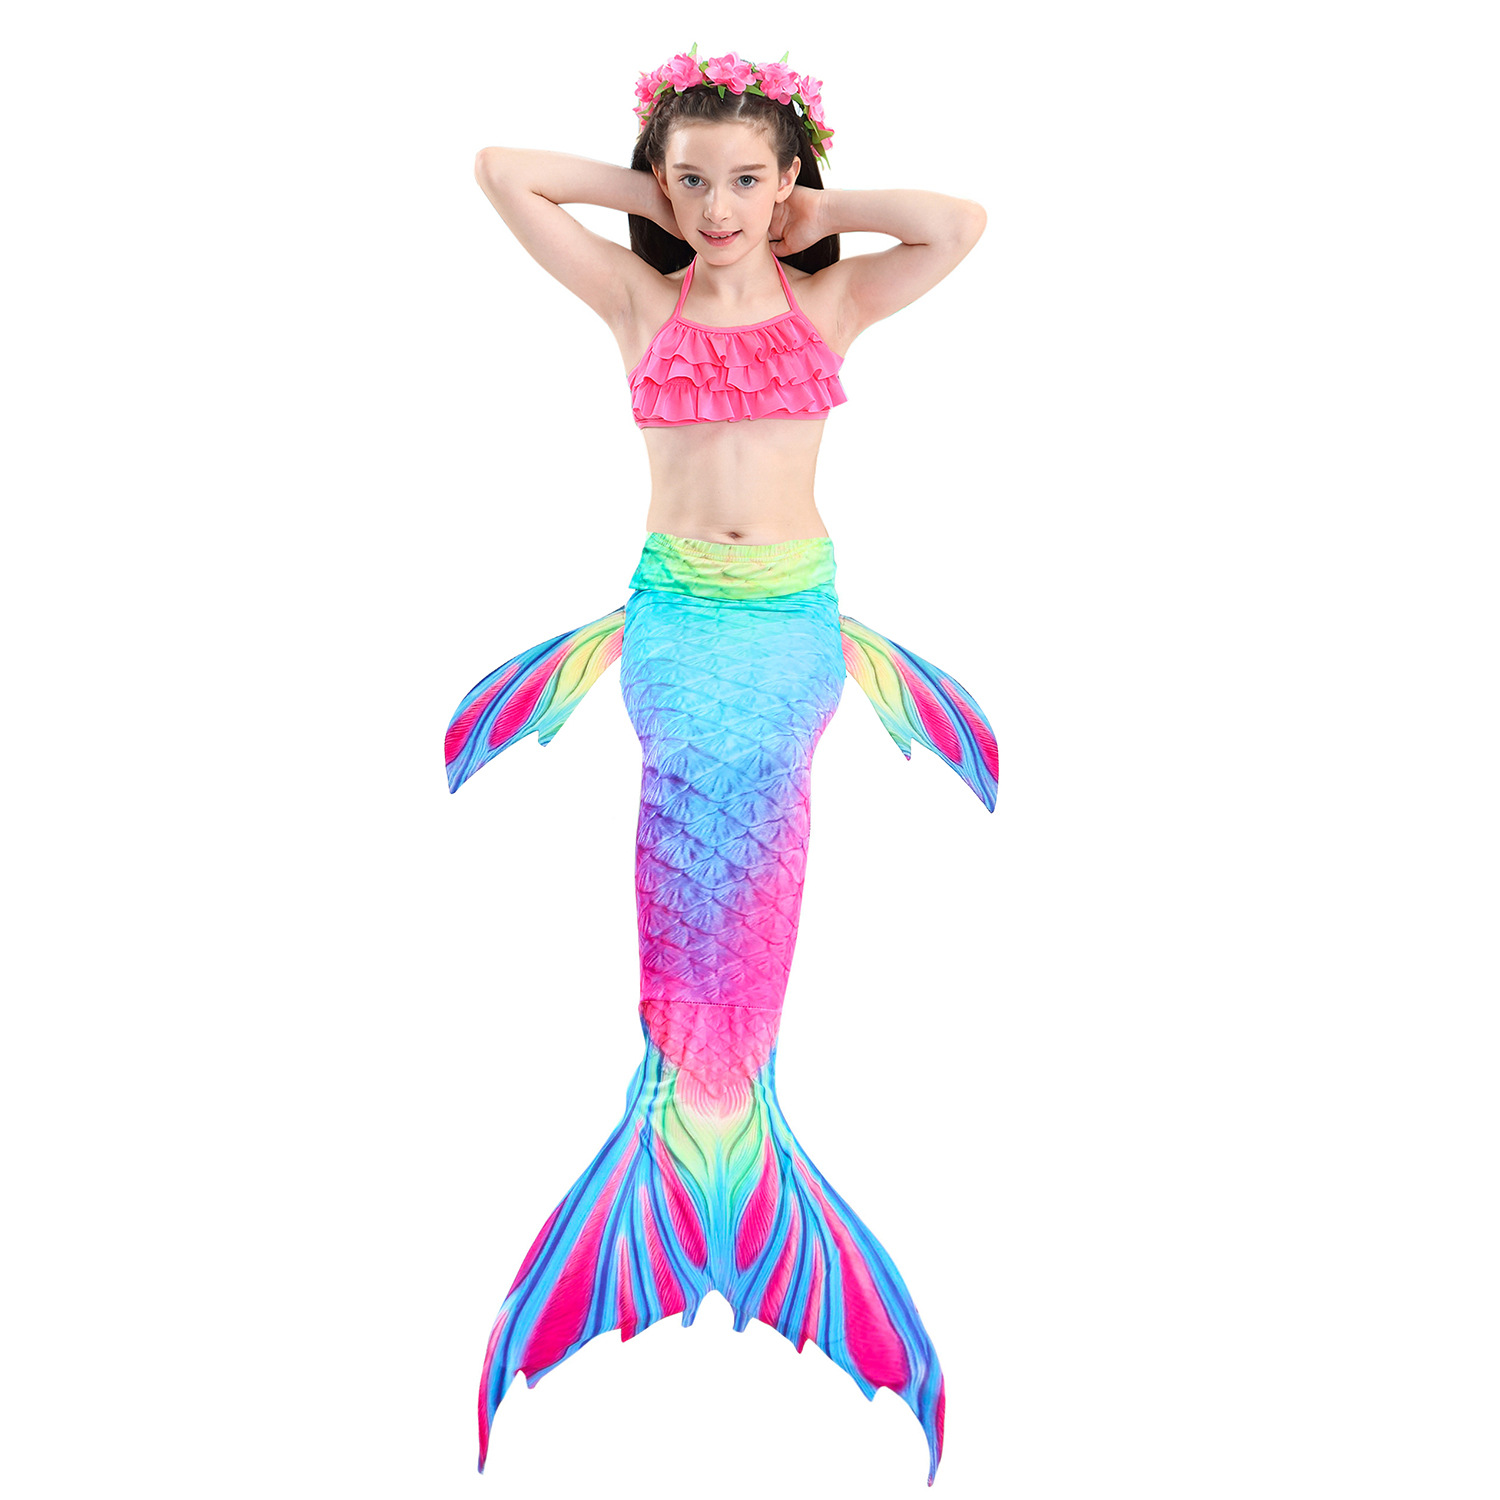 9314587888 898390851 - 4PCS/Set HOT Kids Girls Mermaid Tails with Fin Swimsuit Bikini Bathing Suit Dress for Girls With Flipper Monofin For Swim